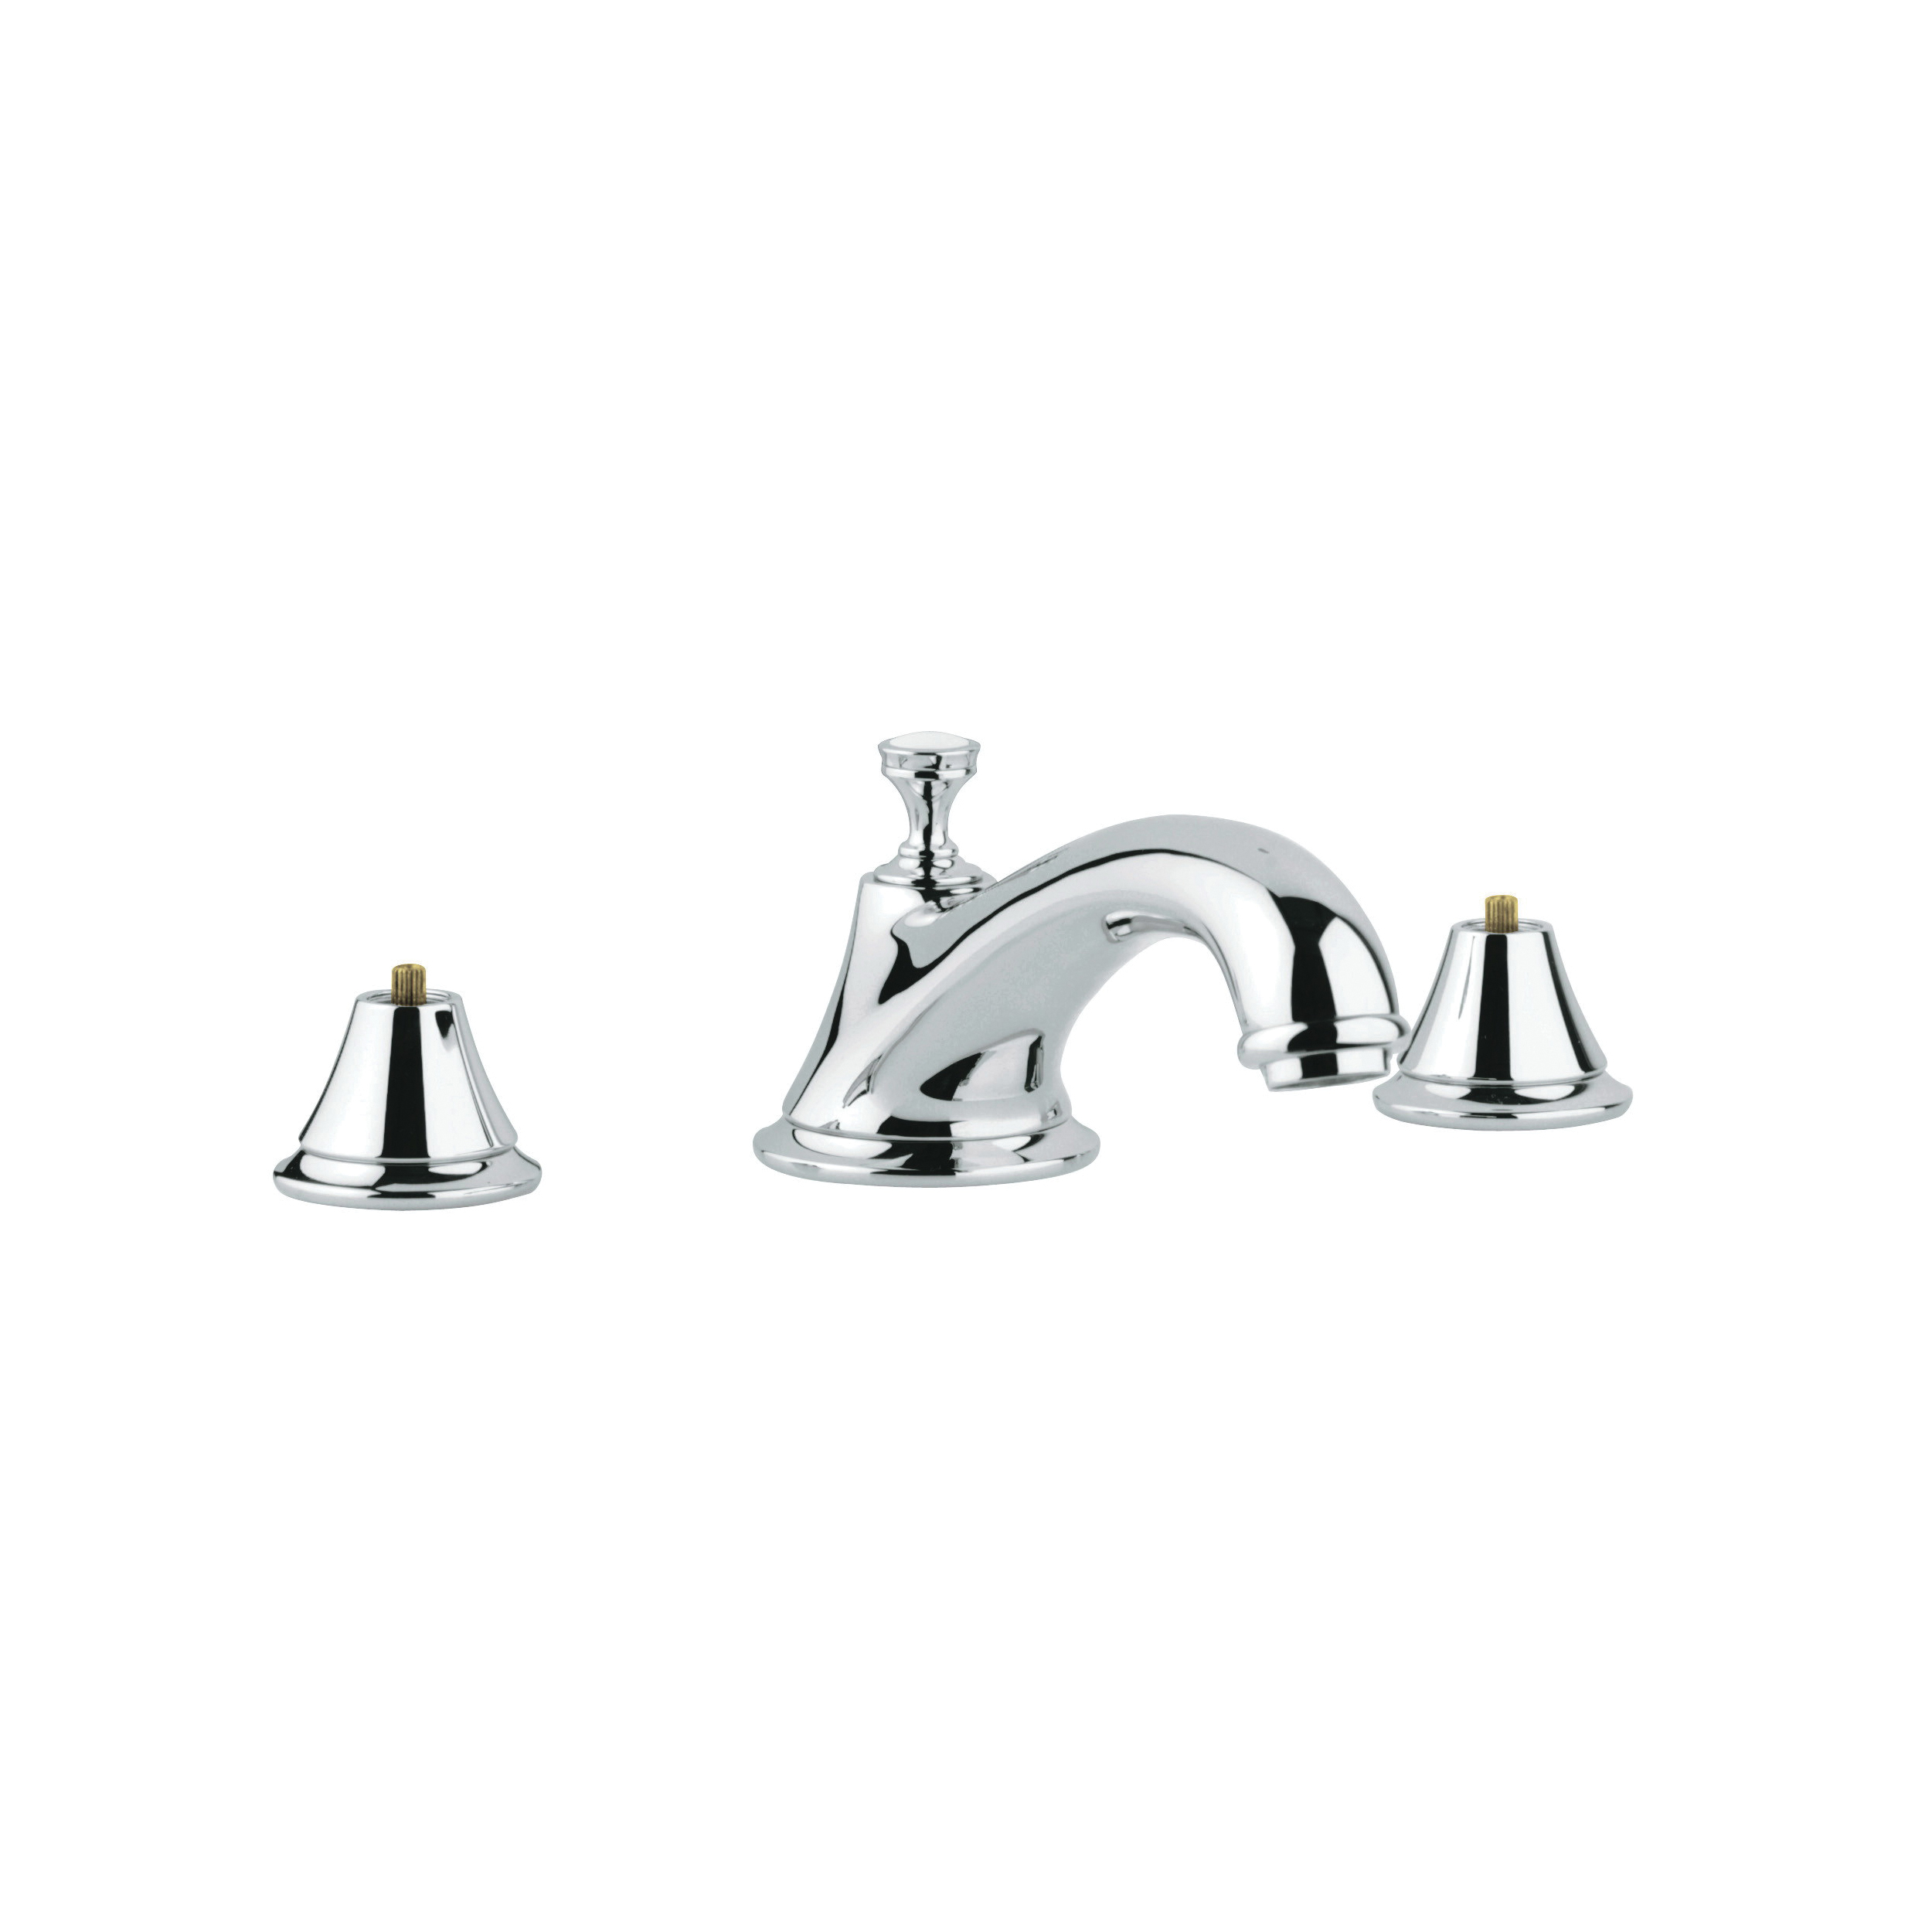 GROHE 25055000 Seabury™ Roman Bathtub Faucet, 12.6 gpm, StarLight® Chrome Plated, Hand Shower Yes/No: No, Import